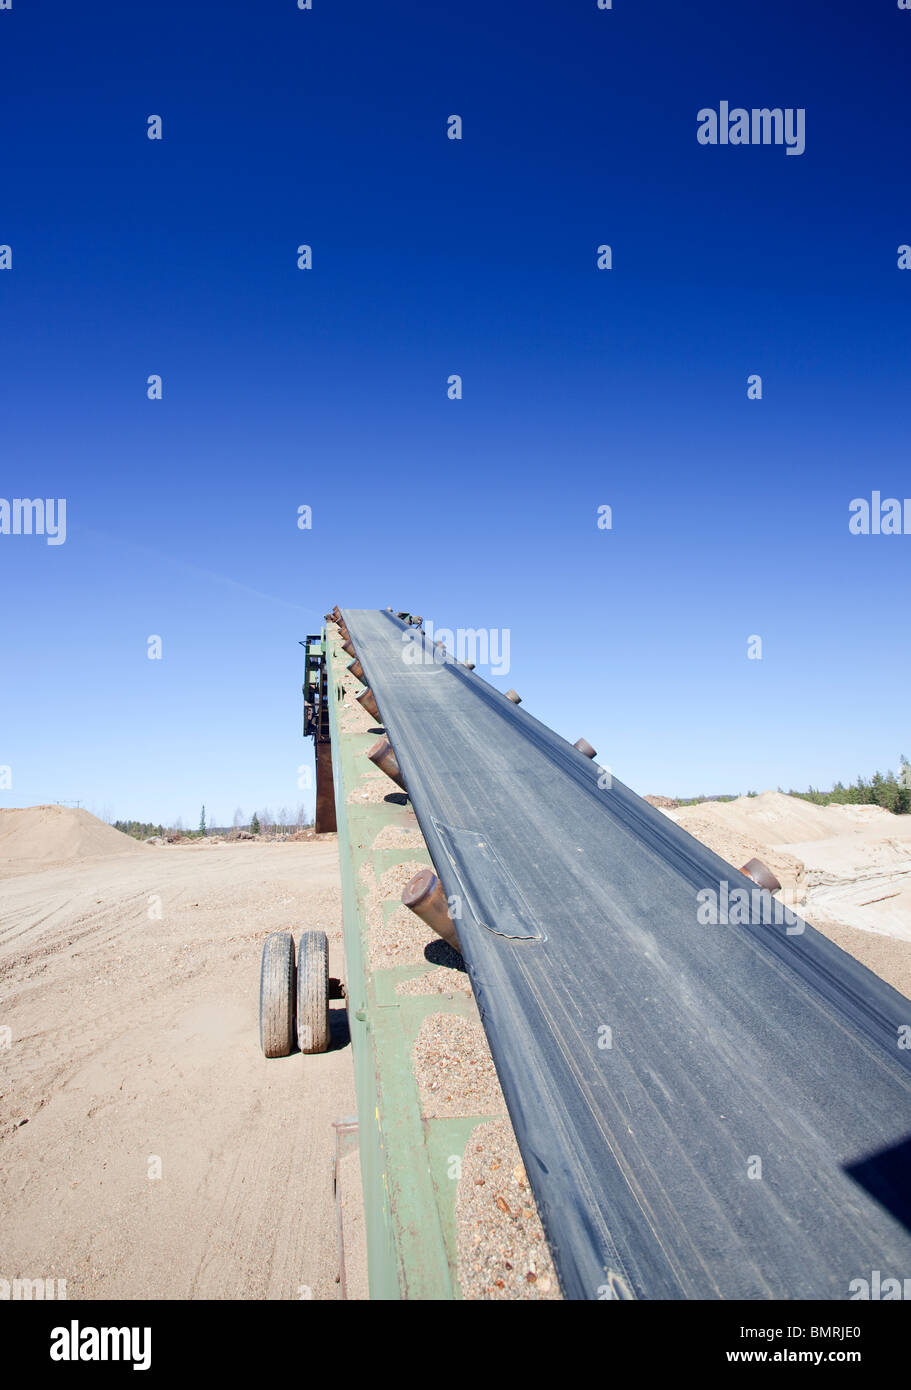 Movable conveyor belt for transporting gravel and sand on a Finnish sandpit , Finland - Stock Image